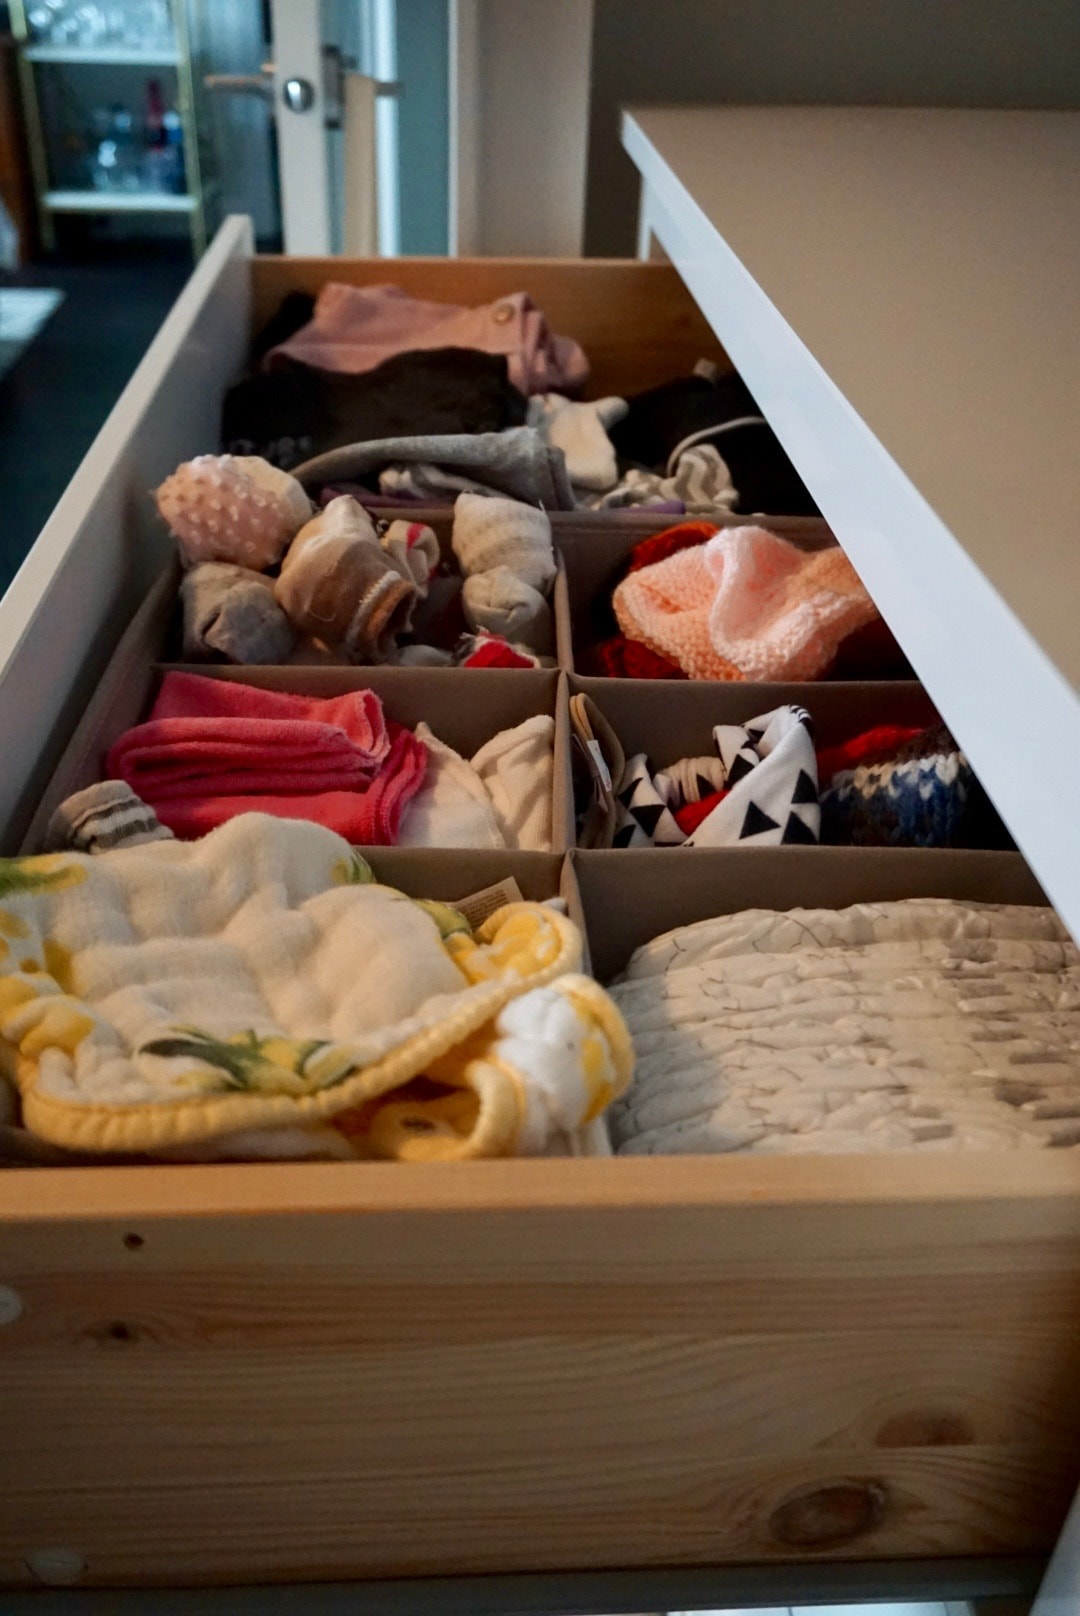 Everything in the first drawer has items for 6 to 12 months. The second drawer is 12 month+ clothing and we use the bottom drawer for storage purposes.